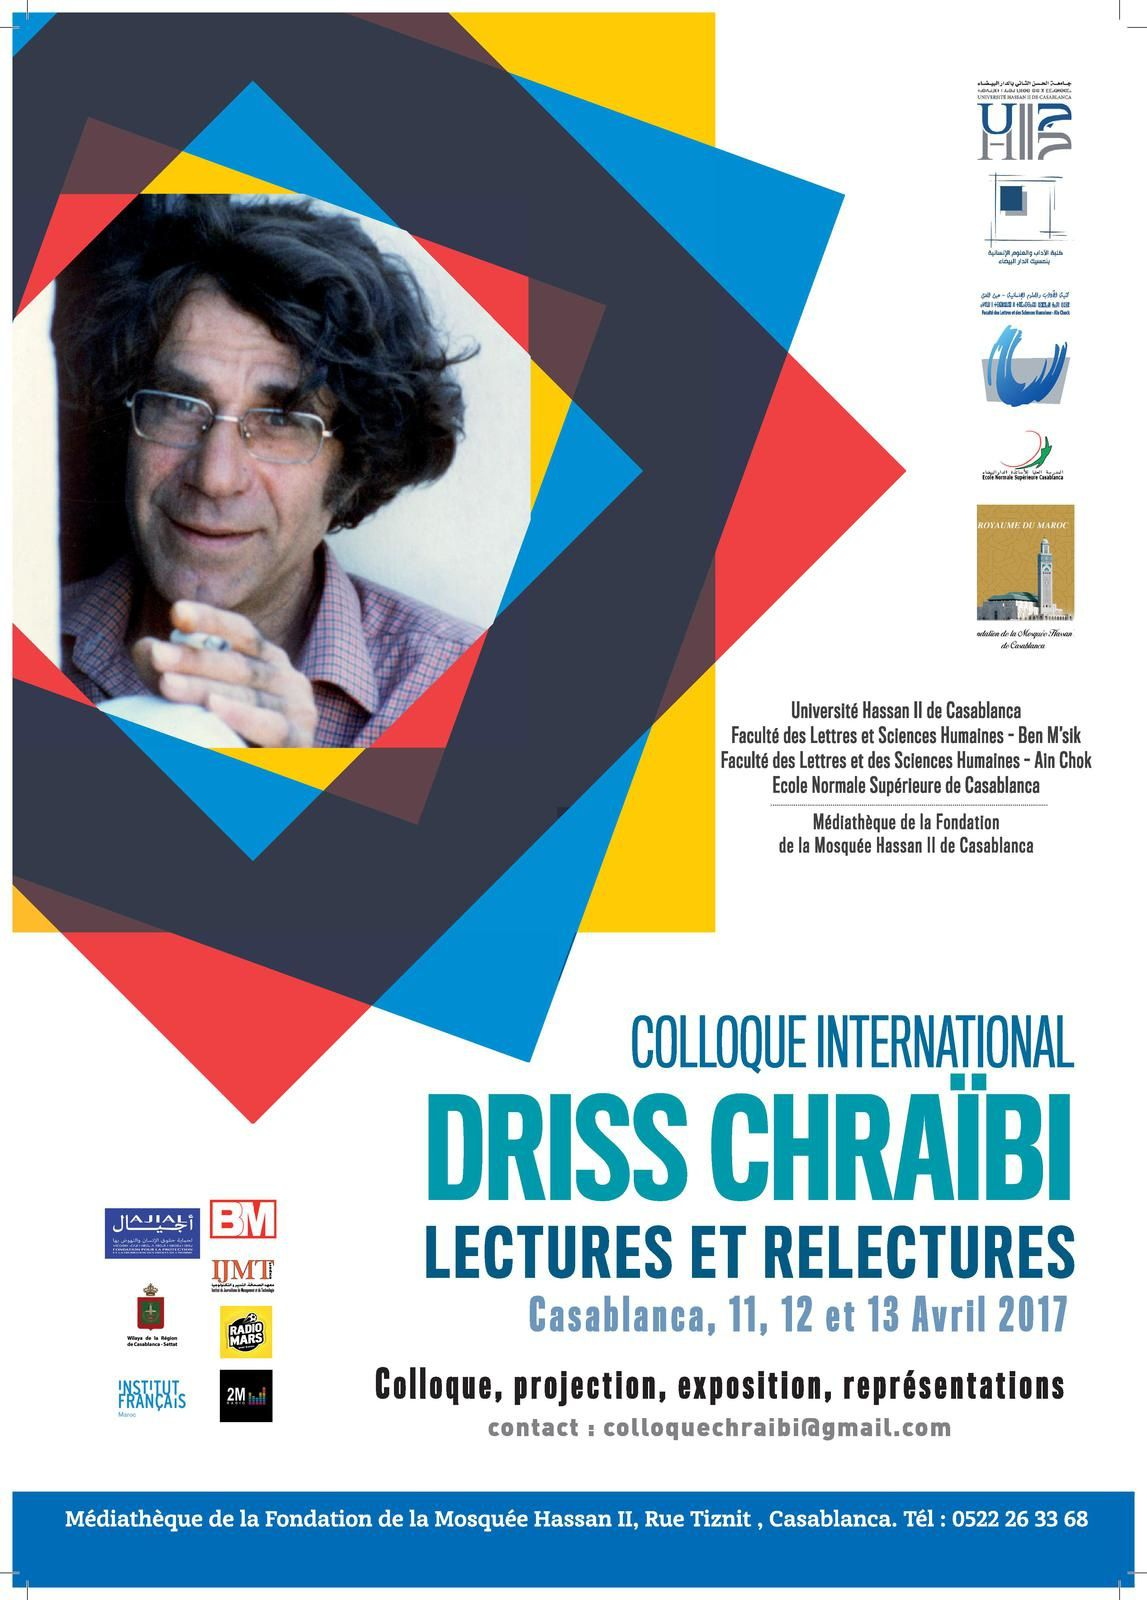 Colloque international : Driss Chraïbi : Lectures et relectures, 11-14 avril 2017